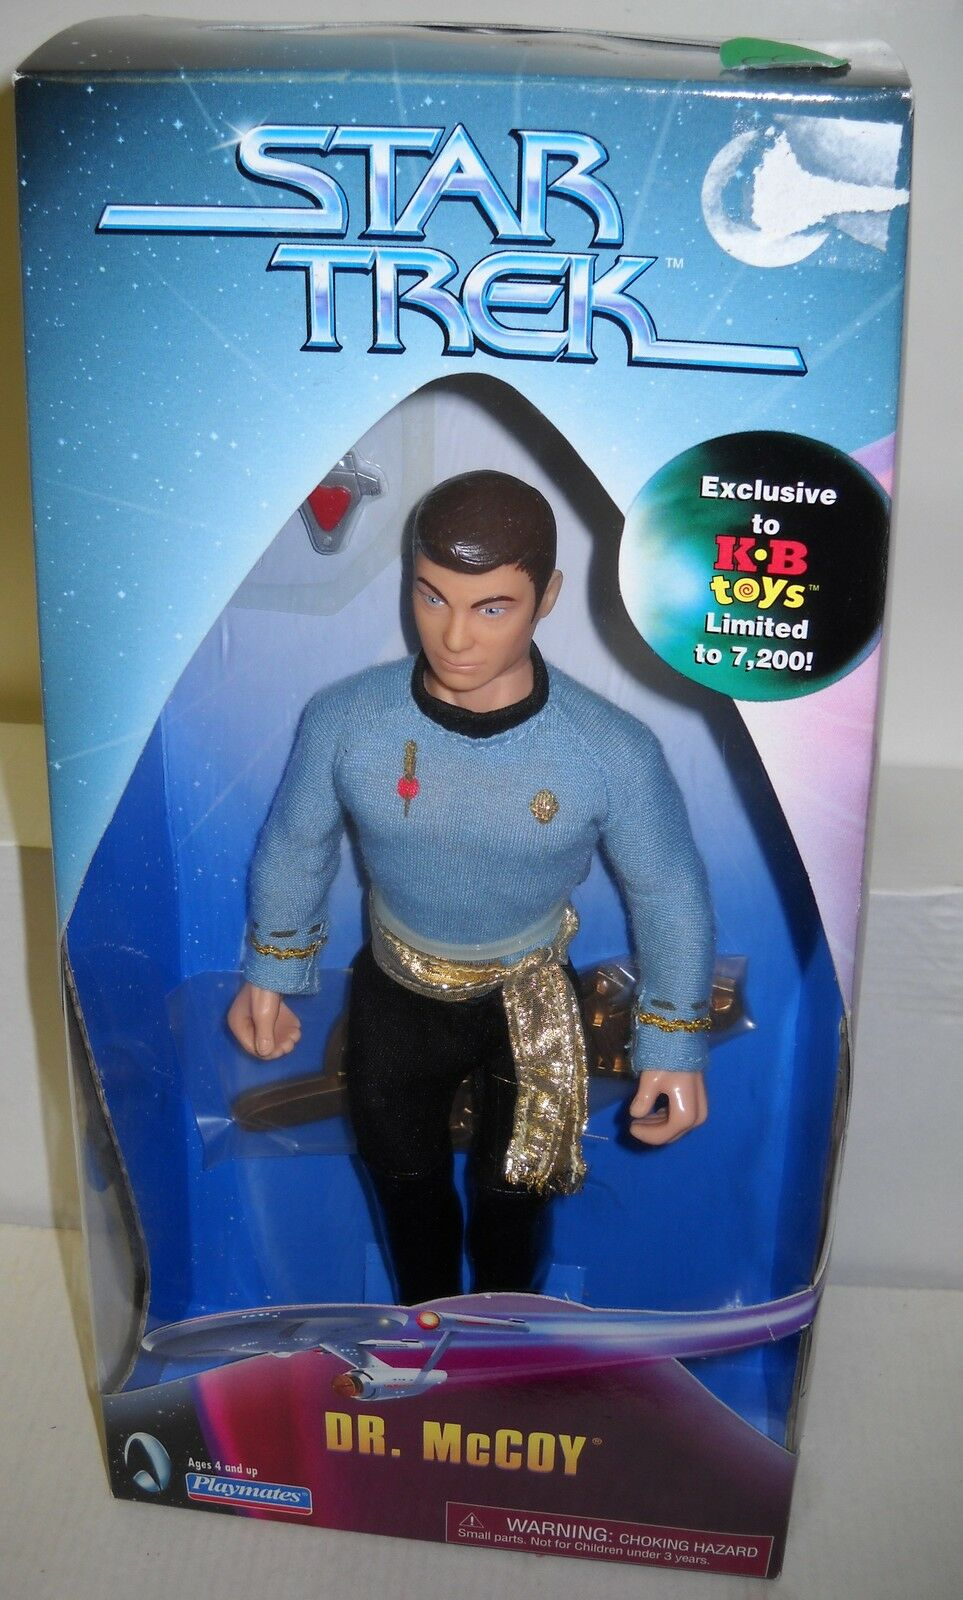 5558 NRFB Playmates Kay Bee Toys Star Trek Dr McCoy